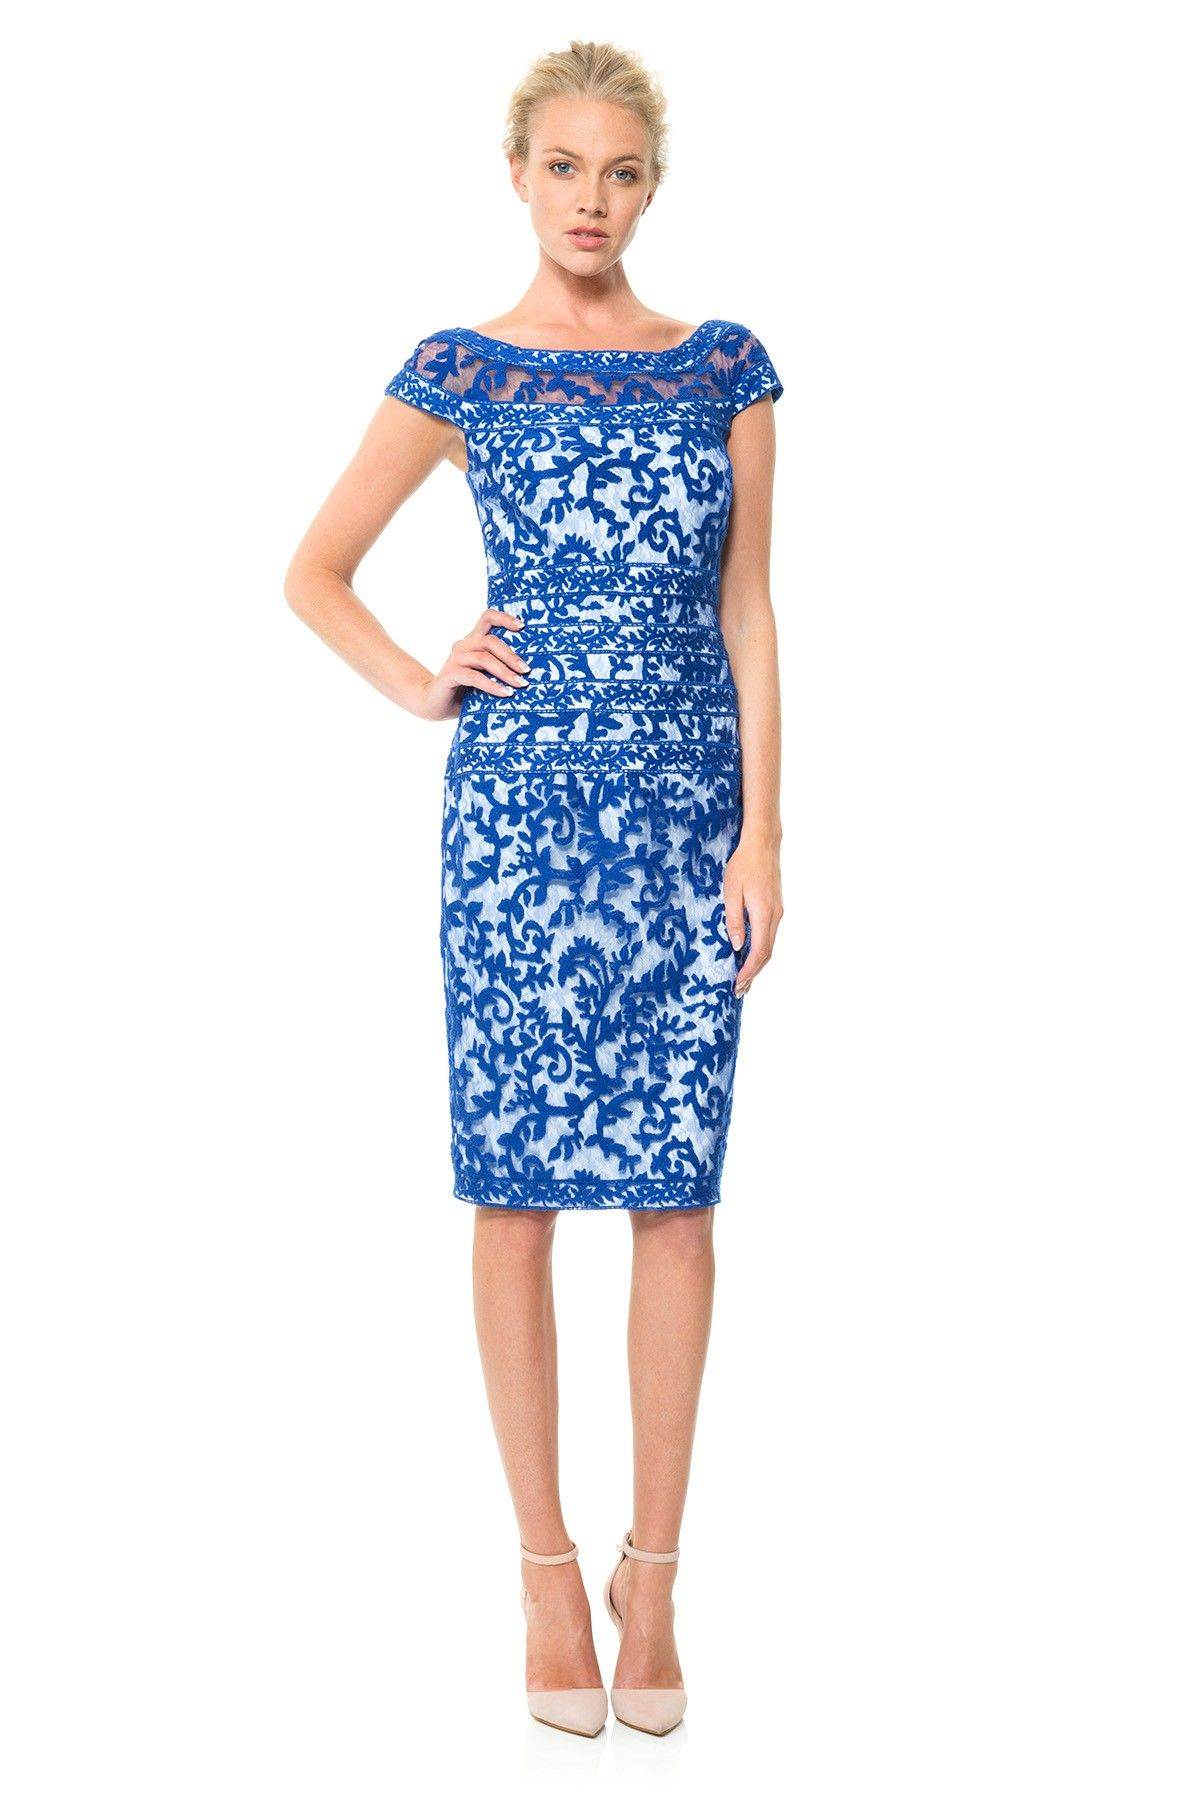 Embroidered Banded Lace Cap Sleeve Sheath Dress New Arrivals